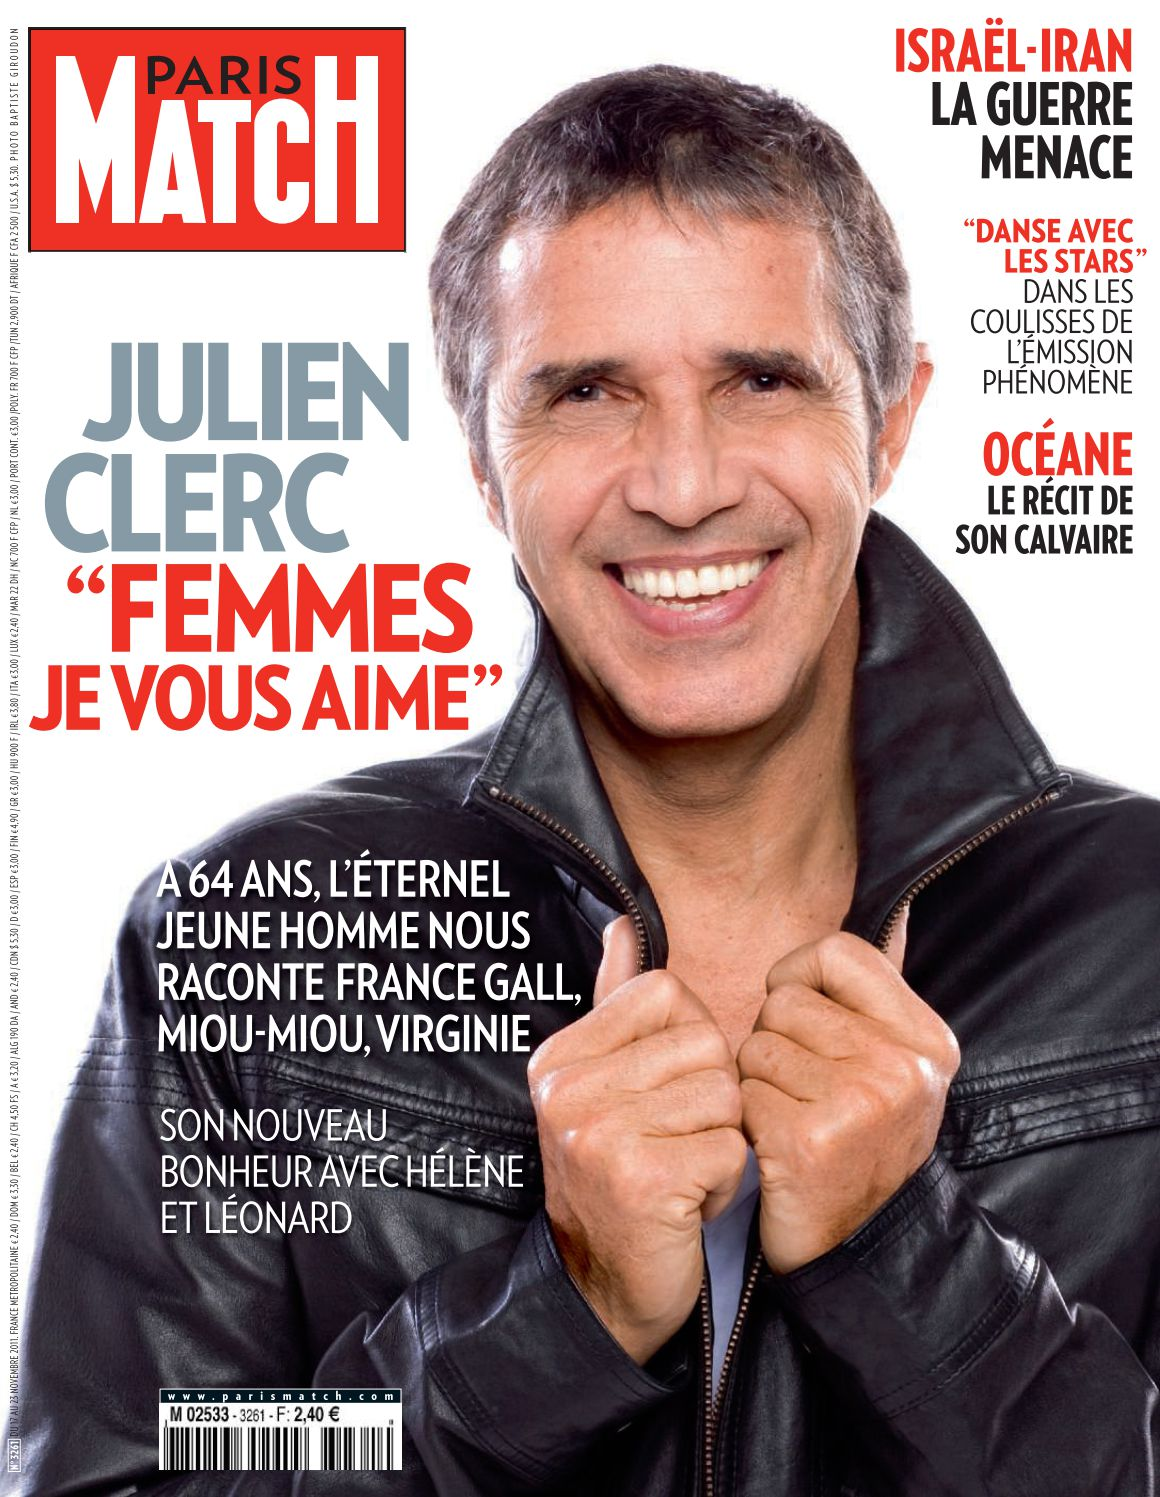 Paris Match n°3261 – Novembre 2011